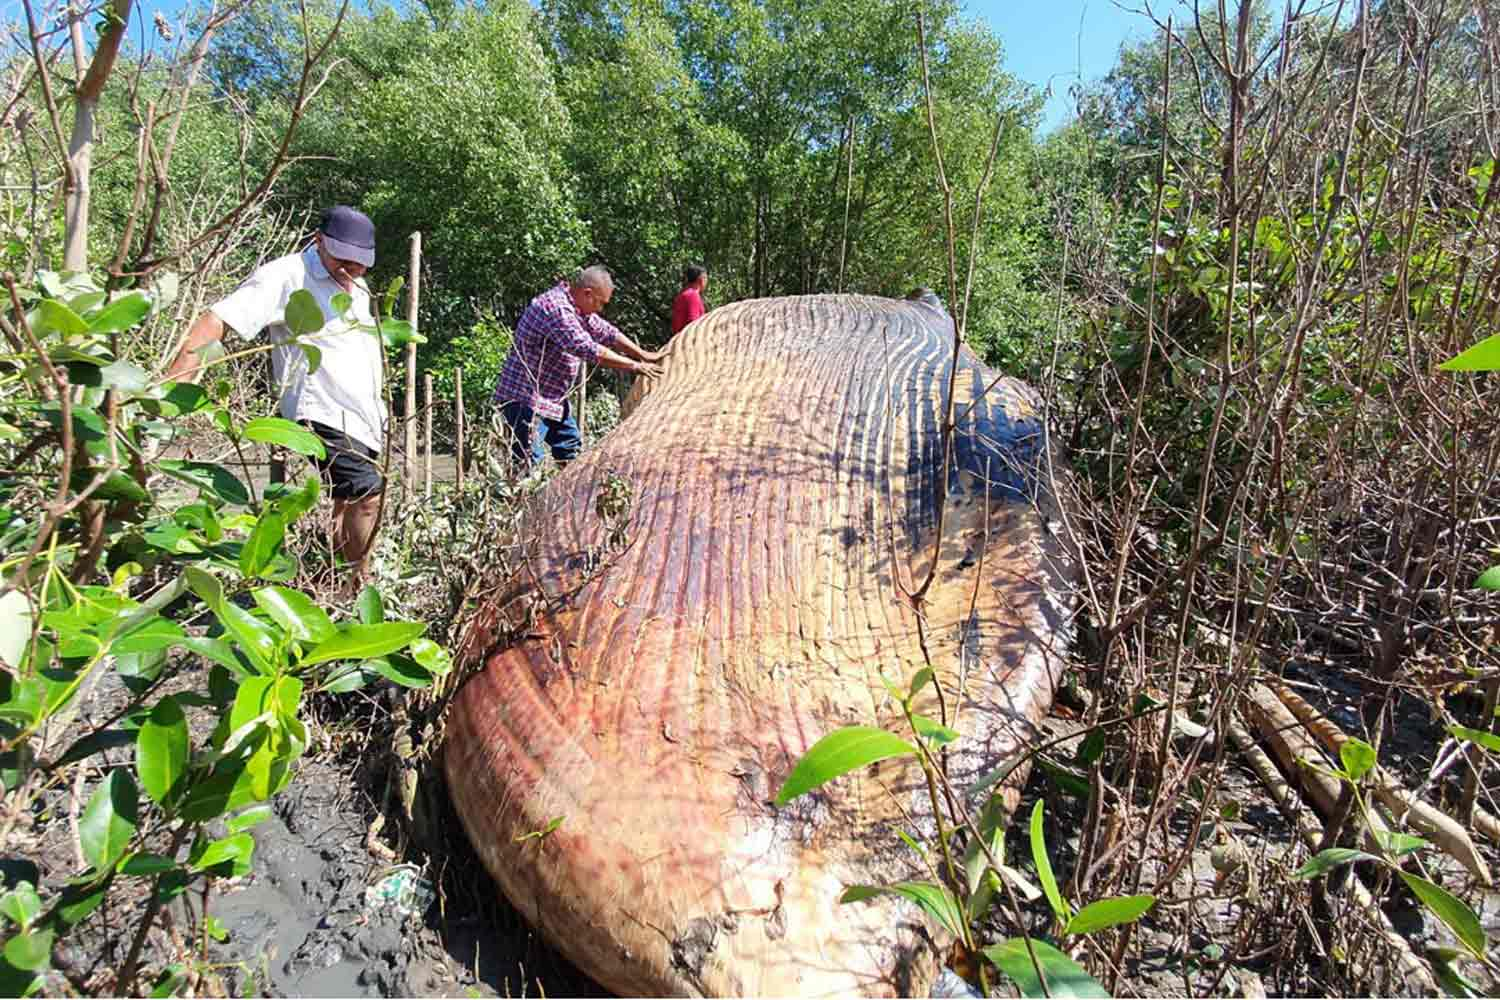 Officials from a marine and coastal resources research centre examine the dead Bruda whale washed ashore in the mangrove forest at Bang Poo, Samut Prakan. (Photo by Sutthiwit Chayutworakan)